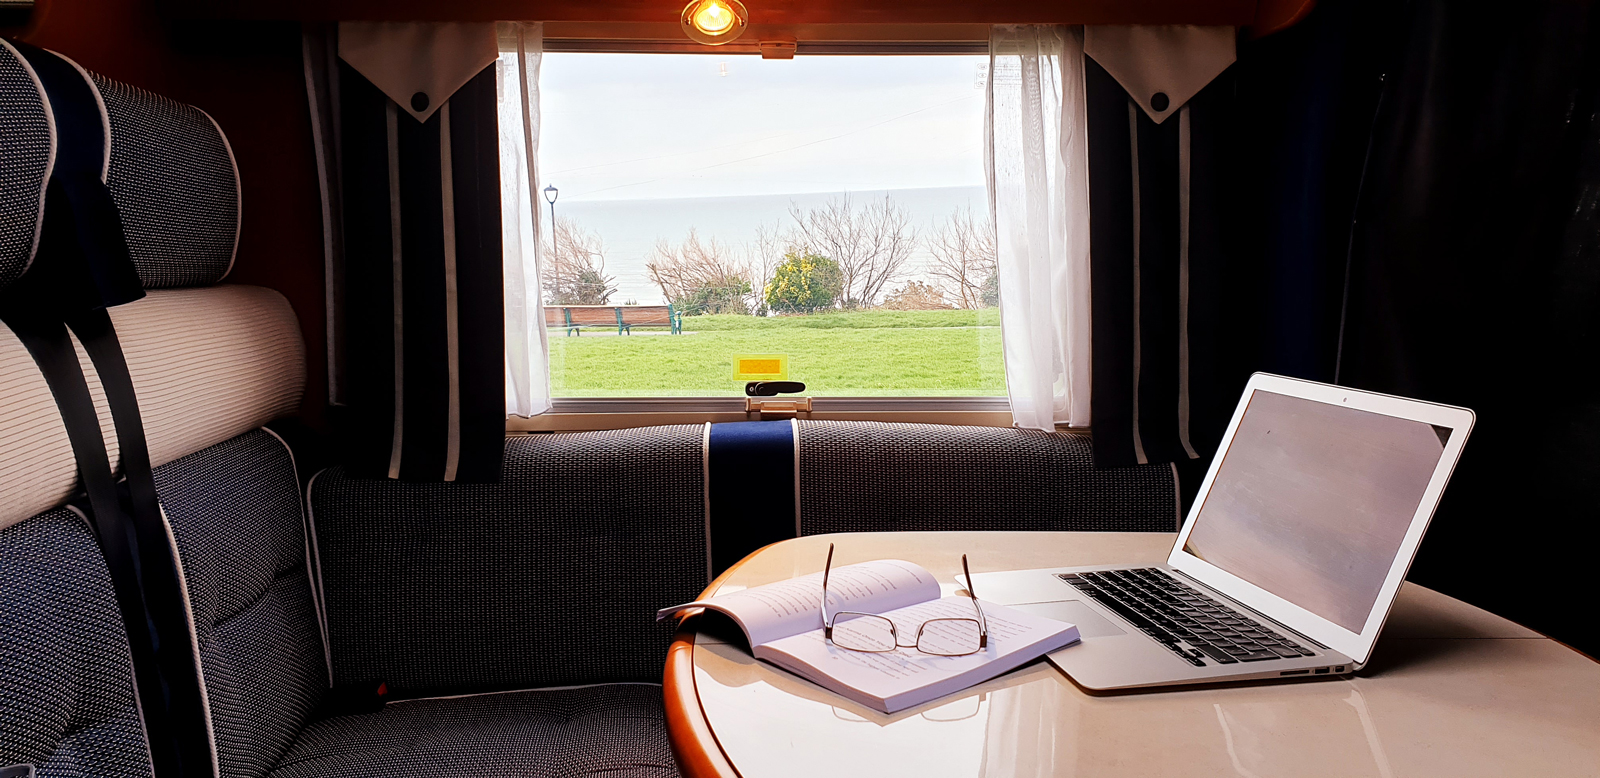 The interior of a motorhome with a laptop and notepad set-up on the table